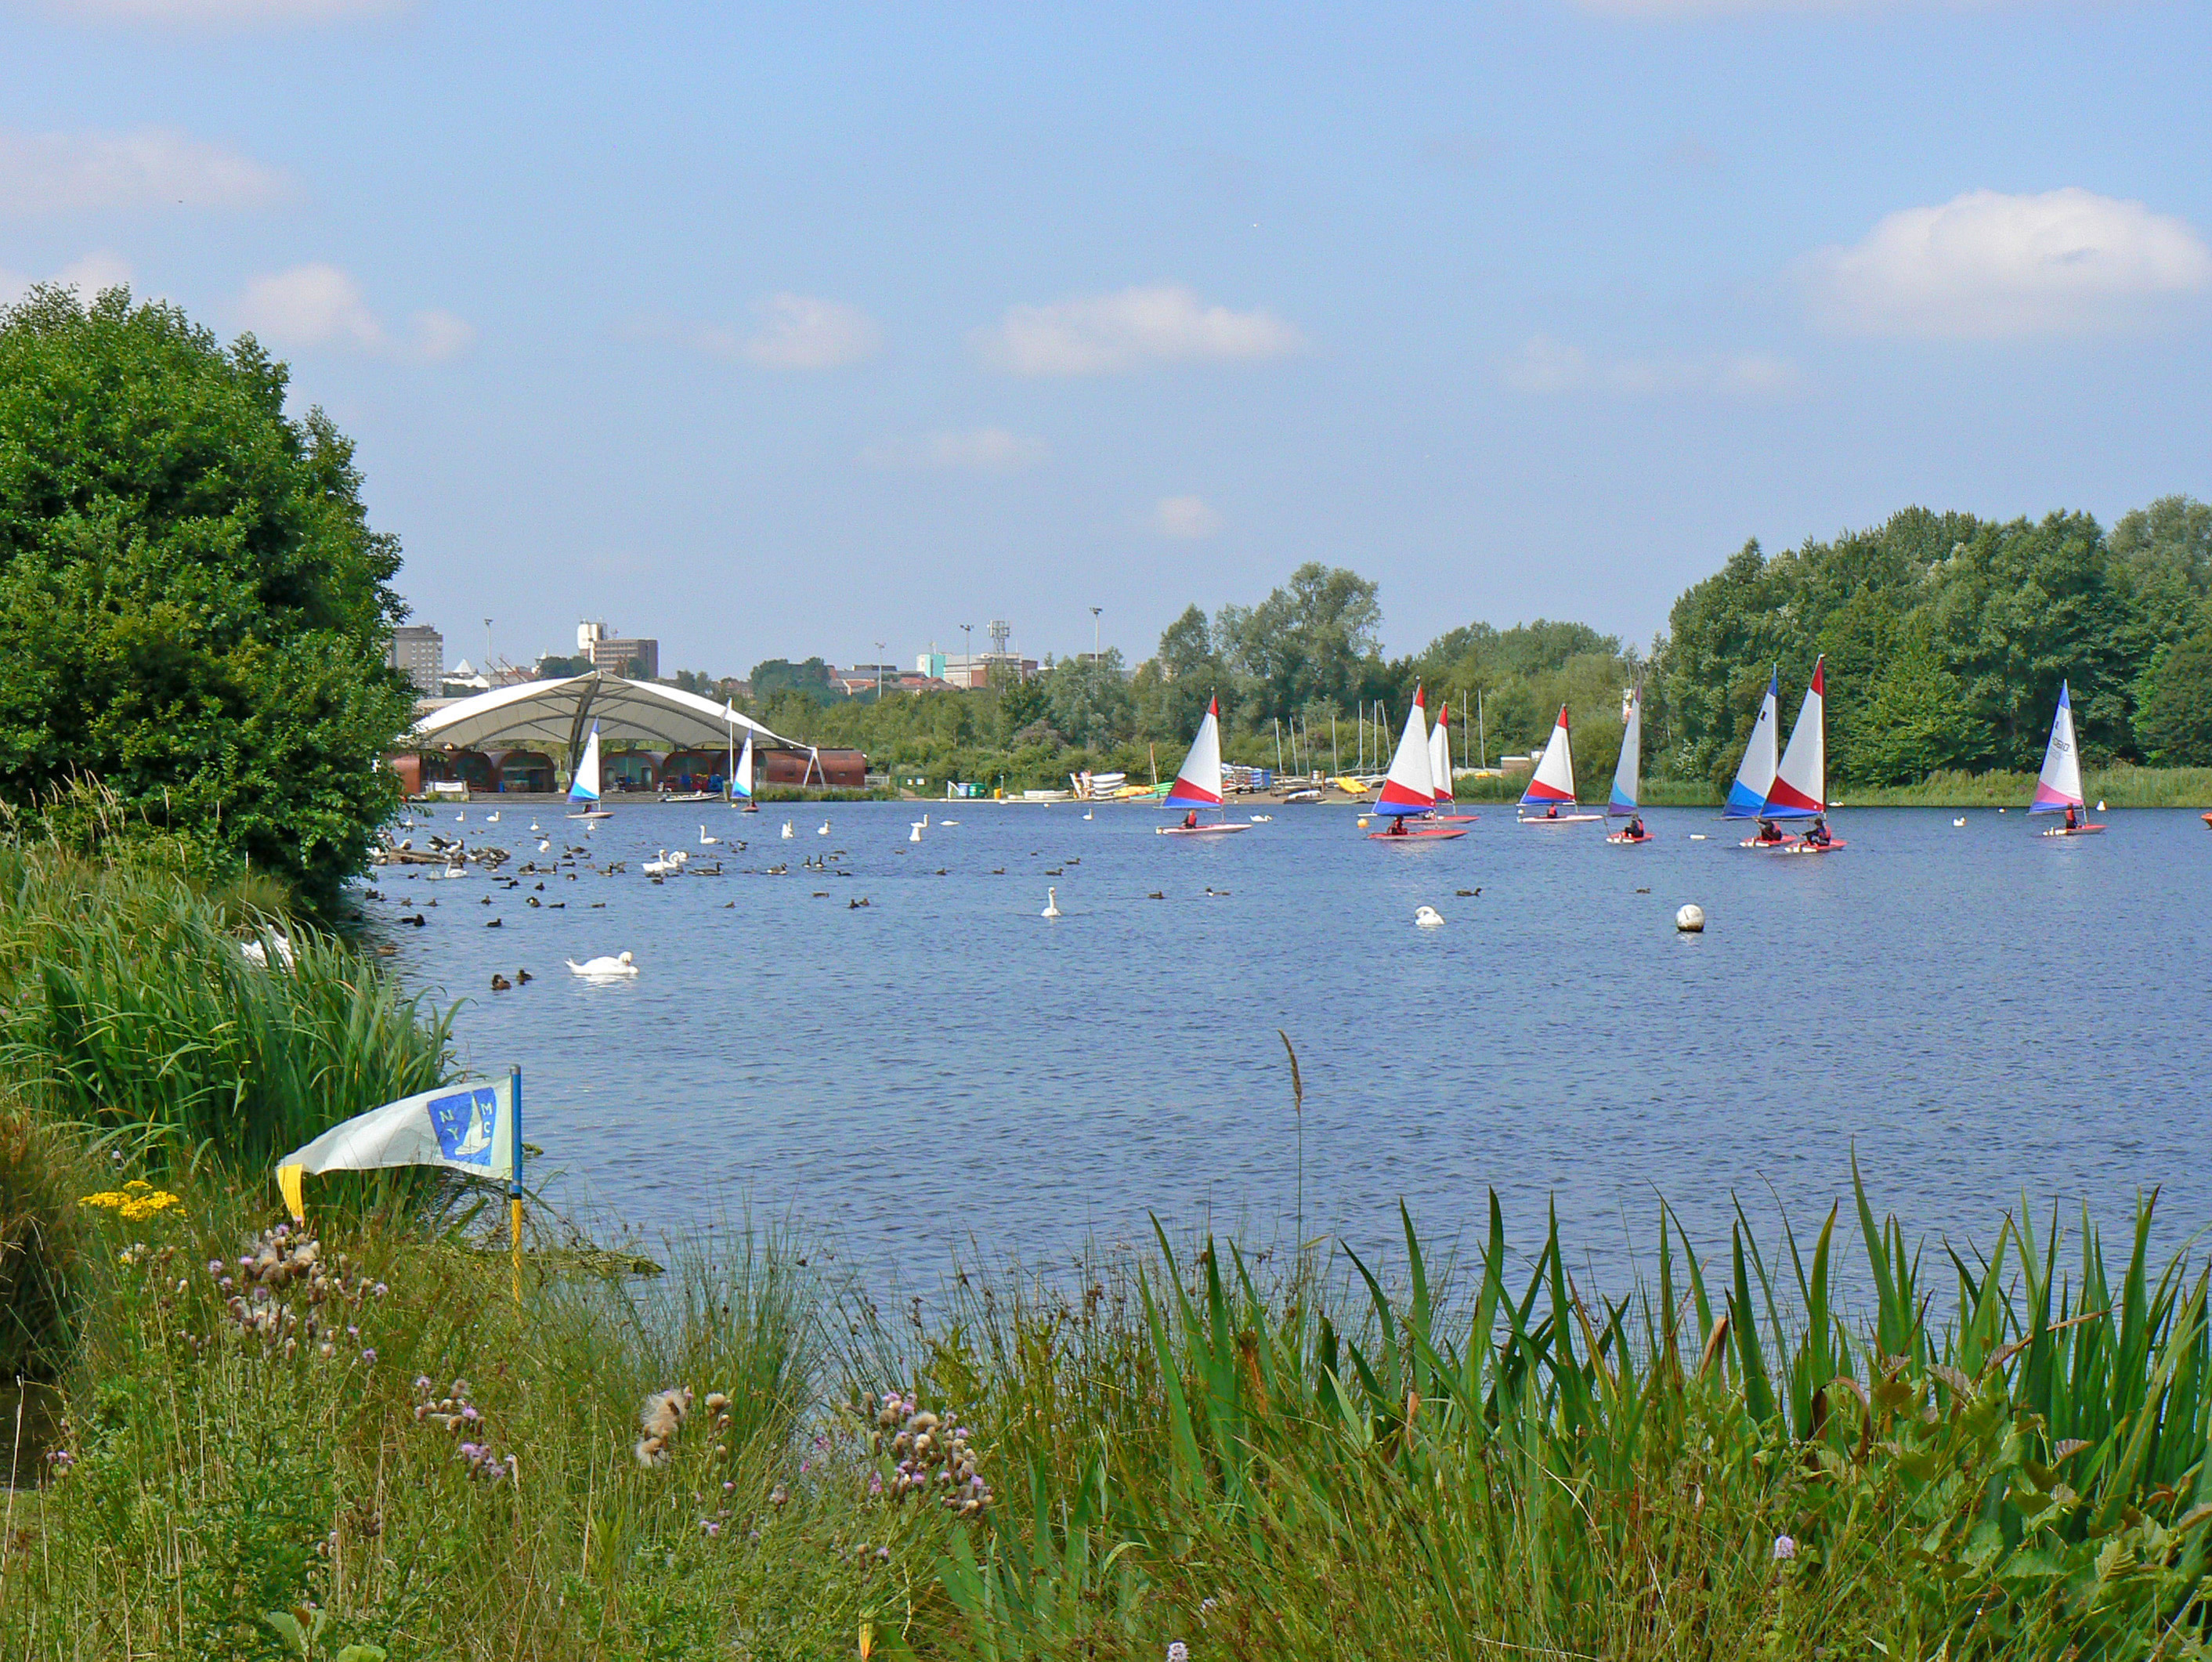 Whitlingham Broad Car Park